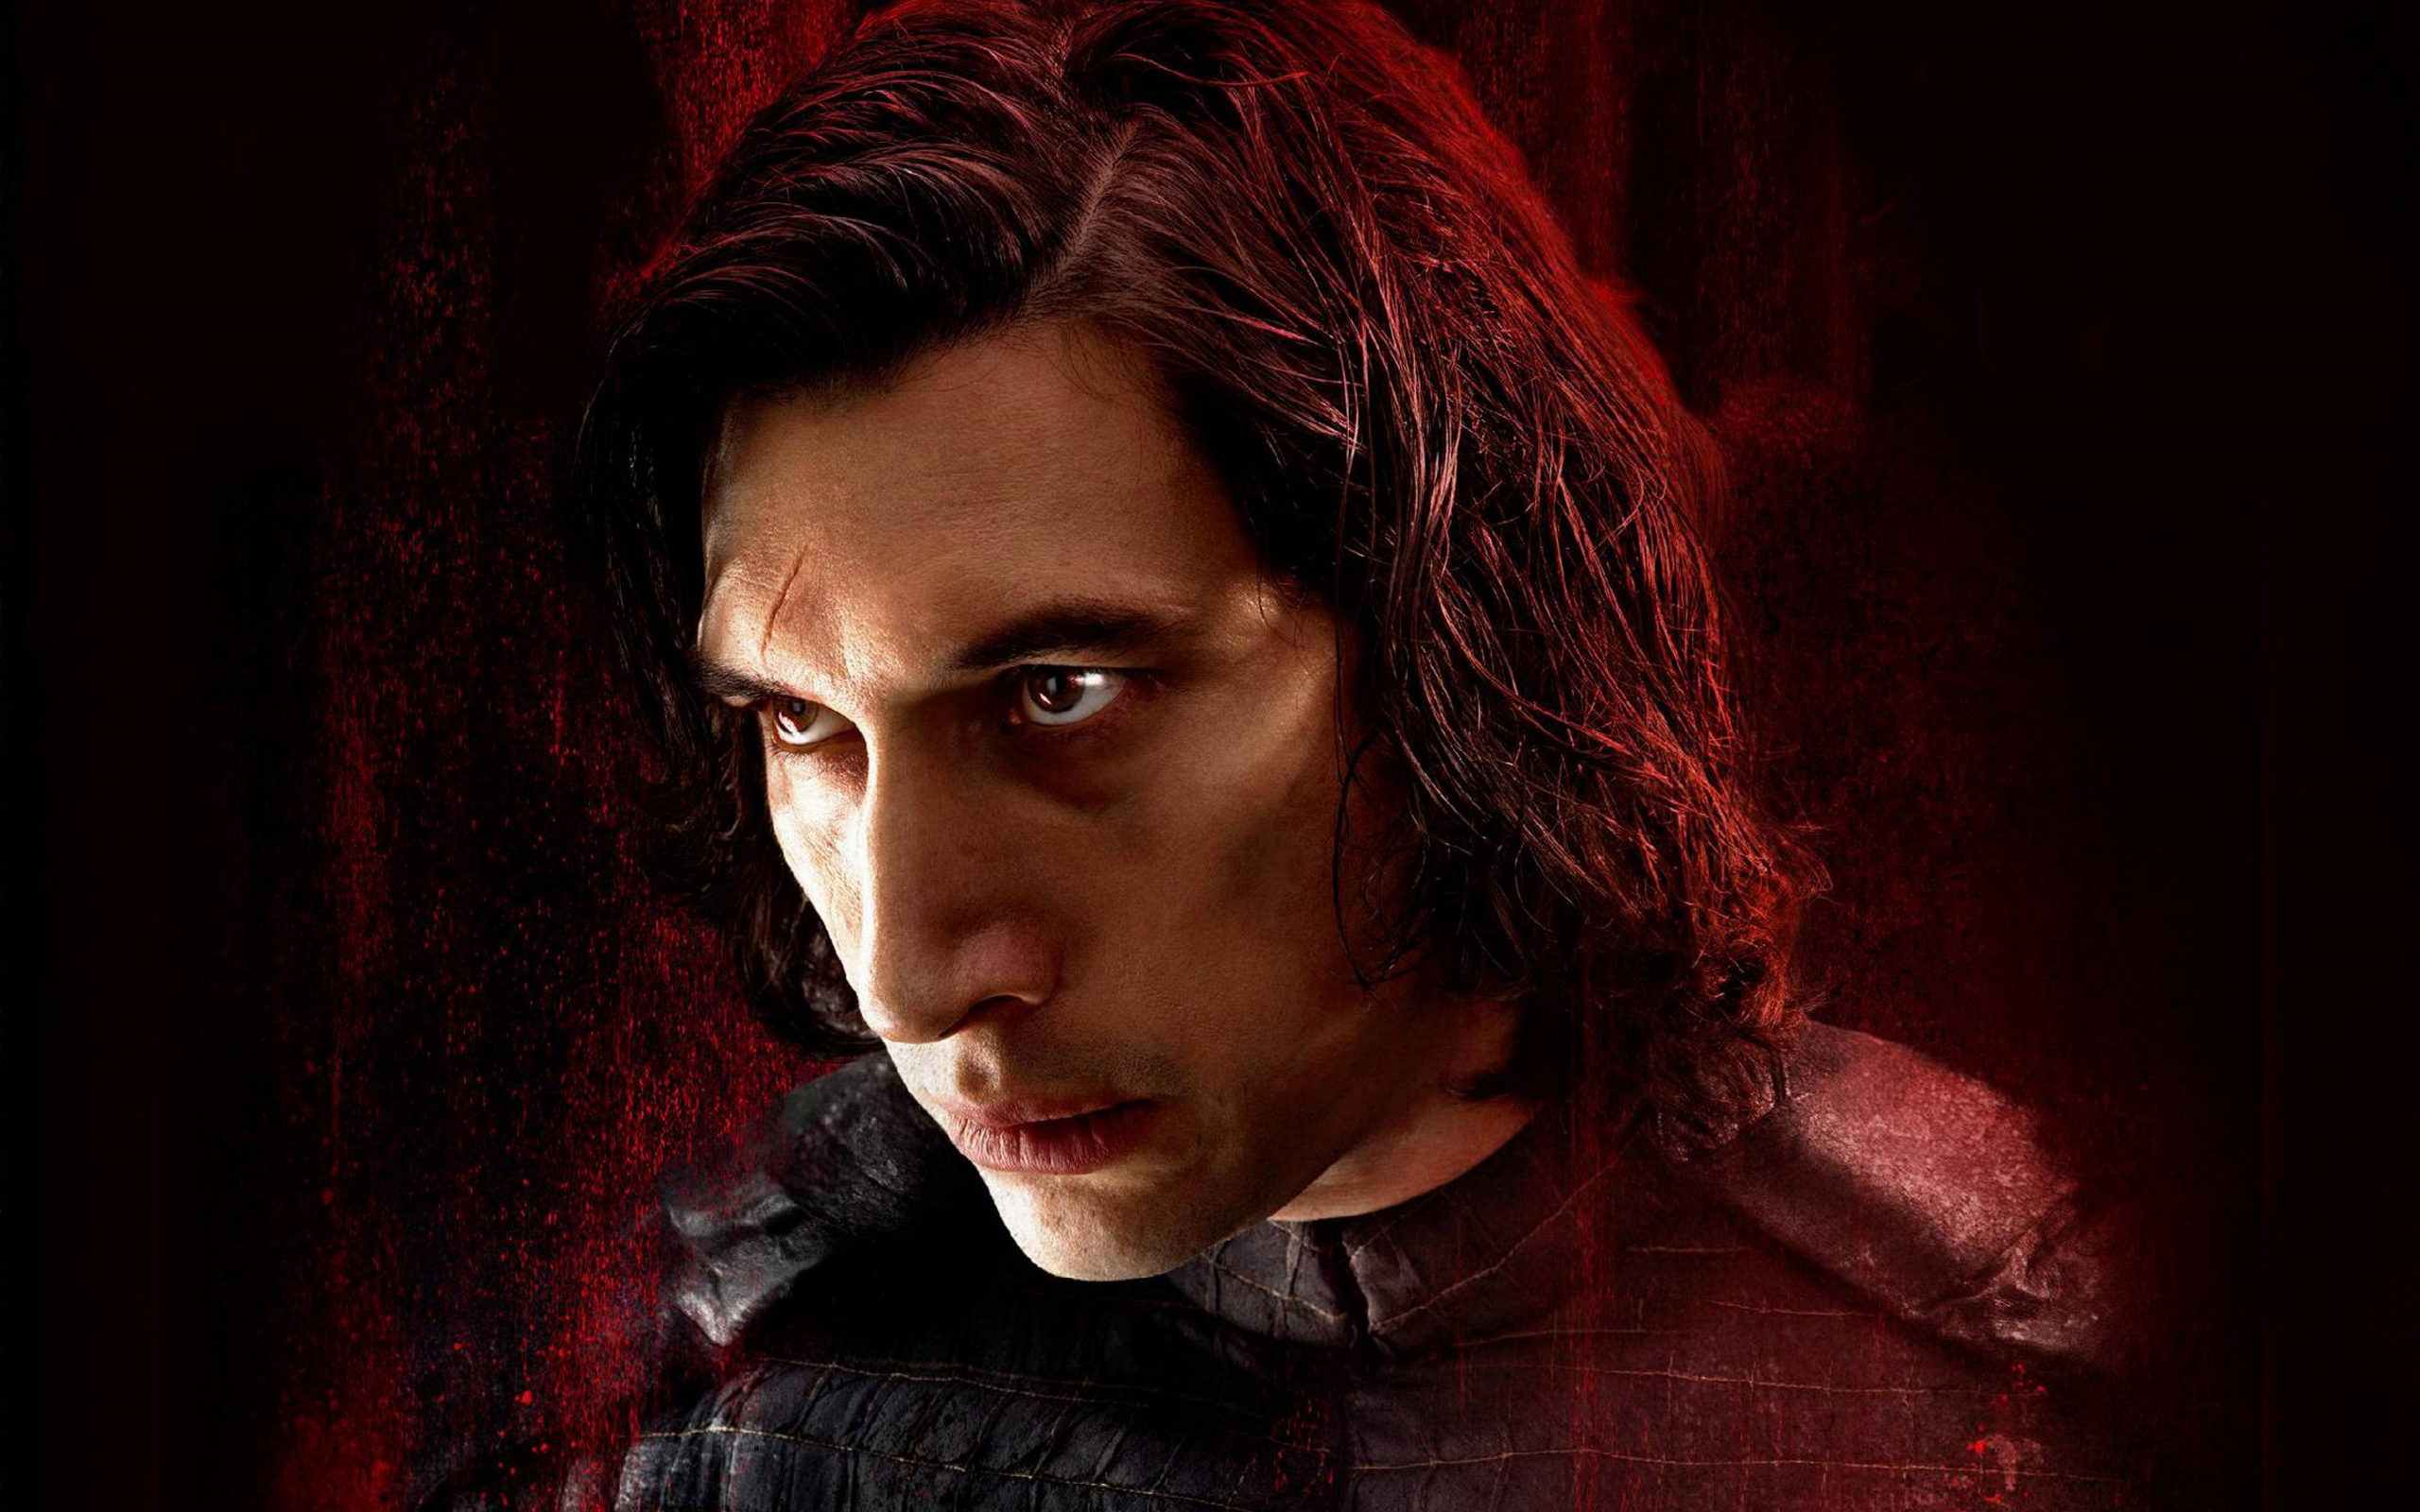 Adam Driver As Kylo Ren In Star Wars The Last Jedi Wallpapers Hd